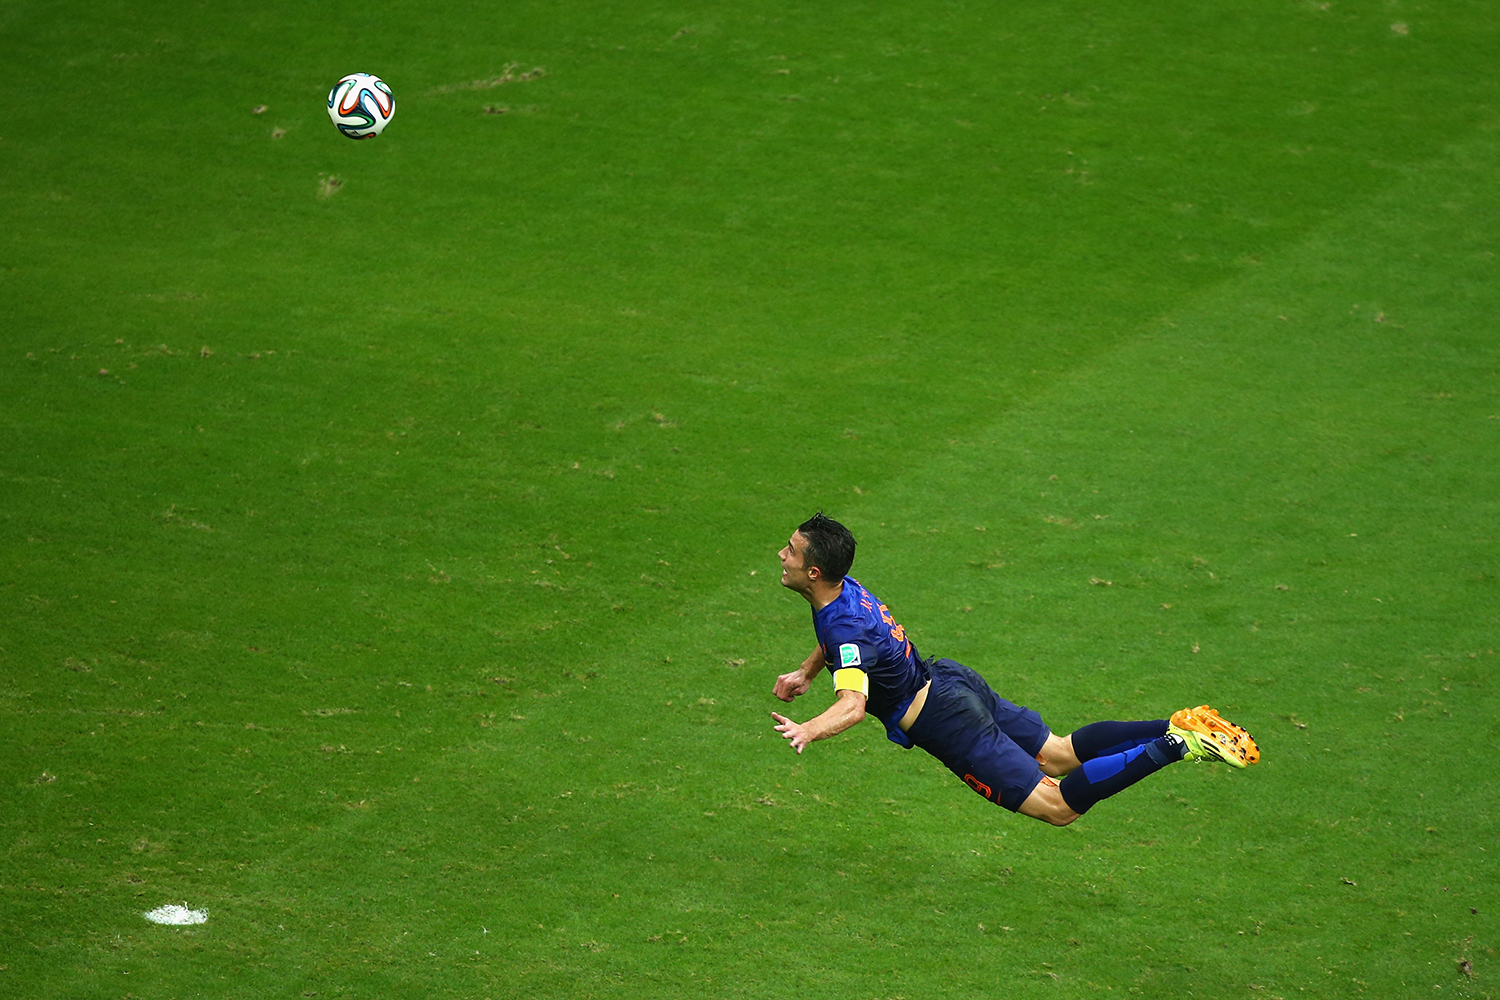 June 13, 2014. Robin van Persie of the Netherlands scores the teams first goal with a diving header in the first half during the 2014 FIFA World Cup Brazil Group B match between Spain and Netherlands at Arena Fonte Nova on in Salvador, Brazil.